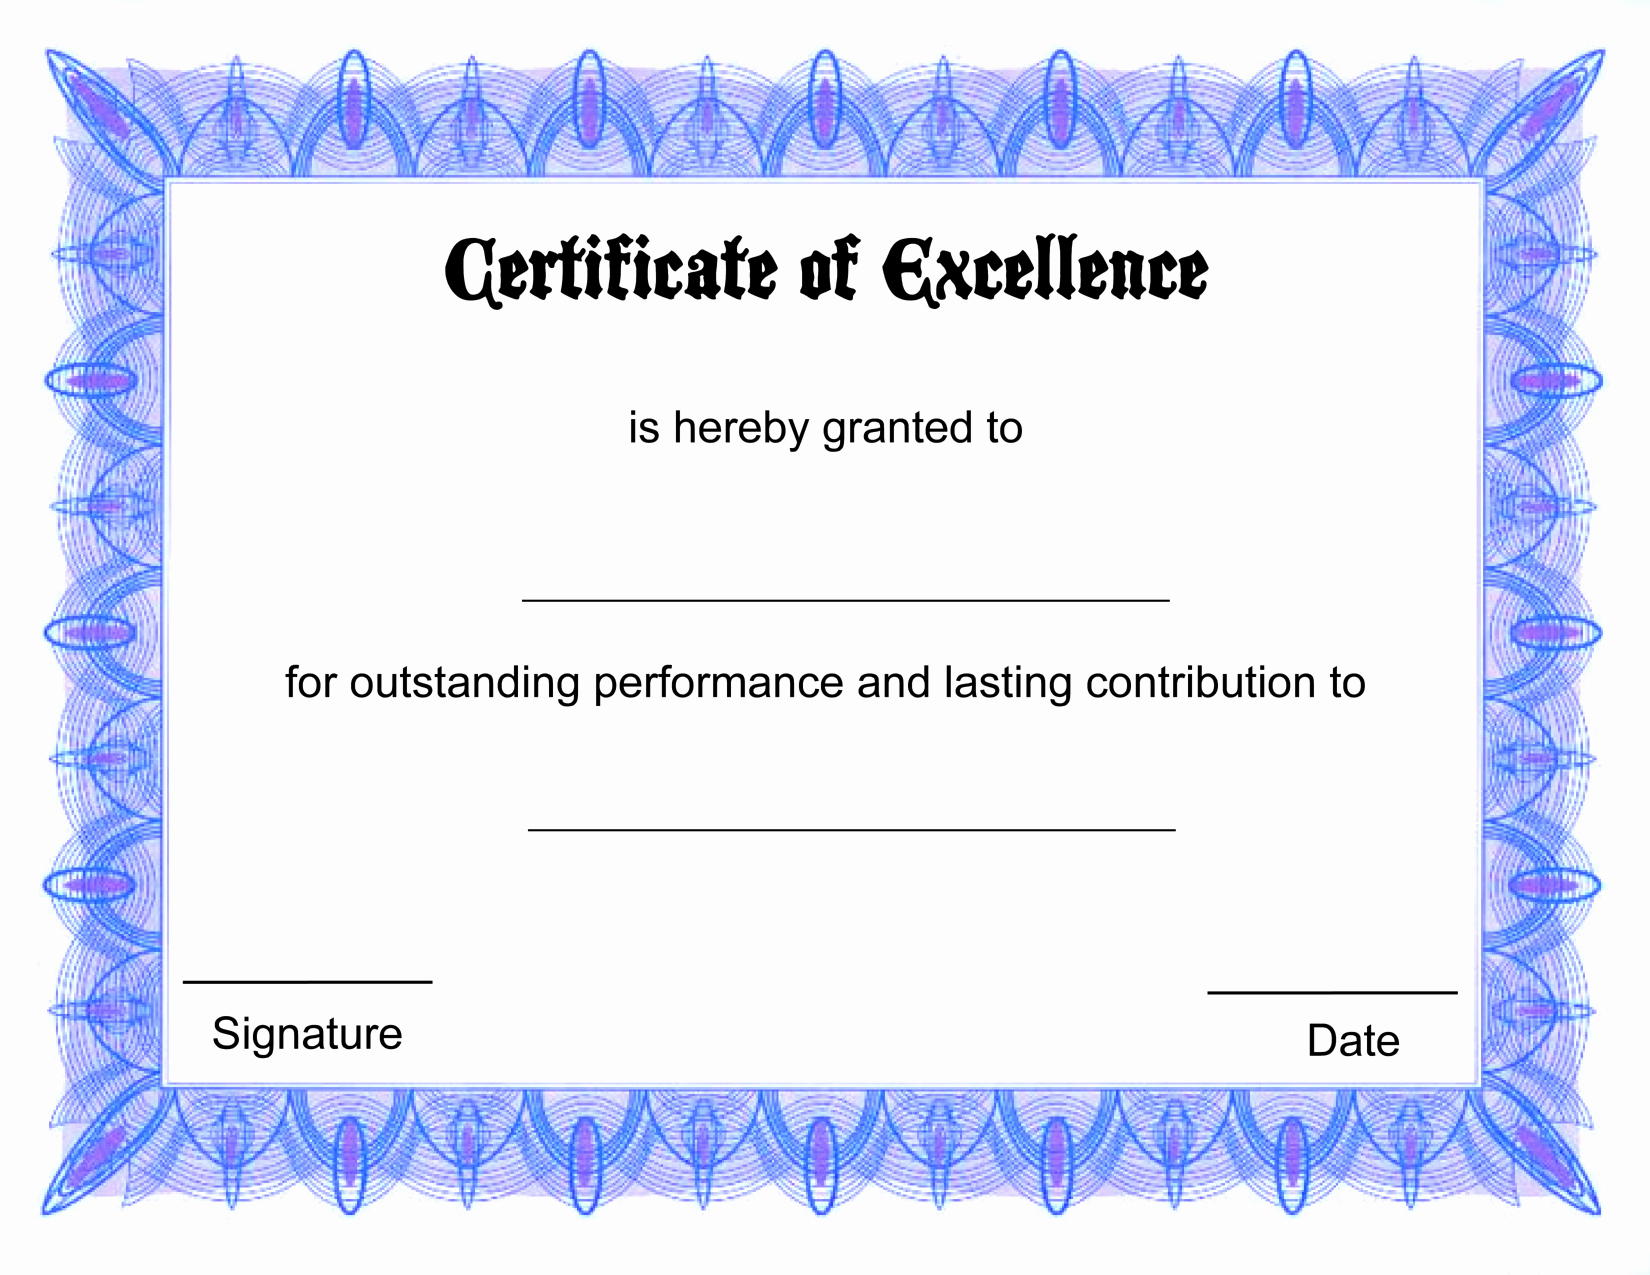 Free Online Certificate Maker software New Printable Certificate Templates